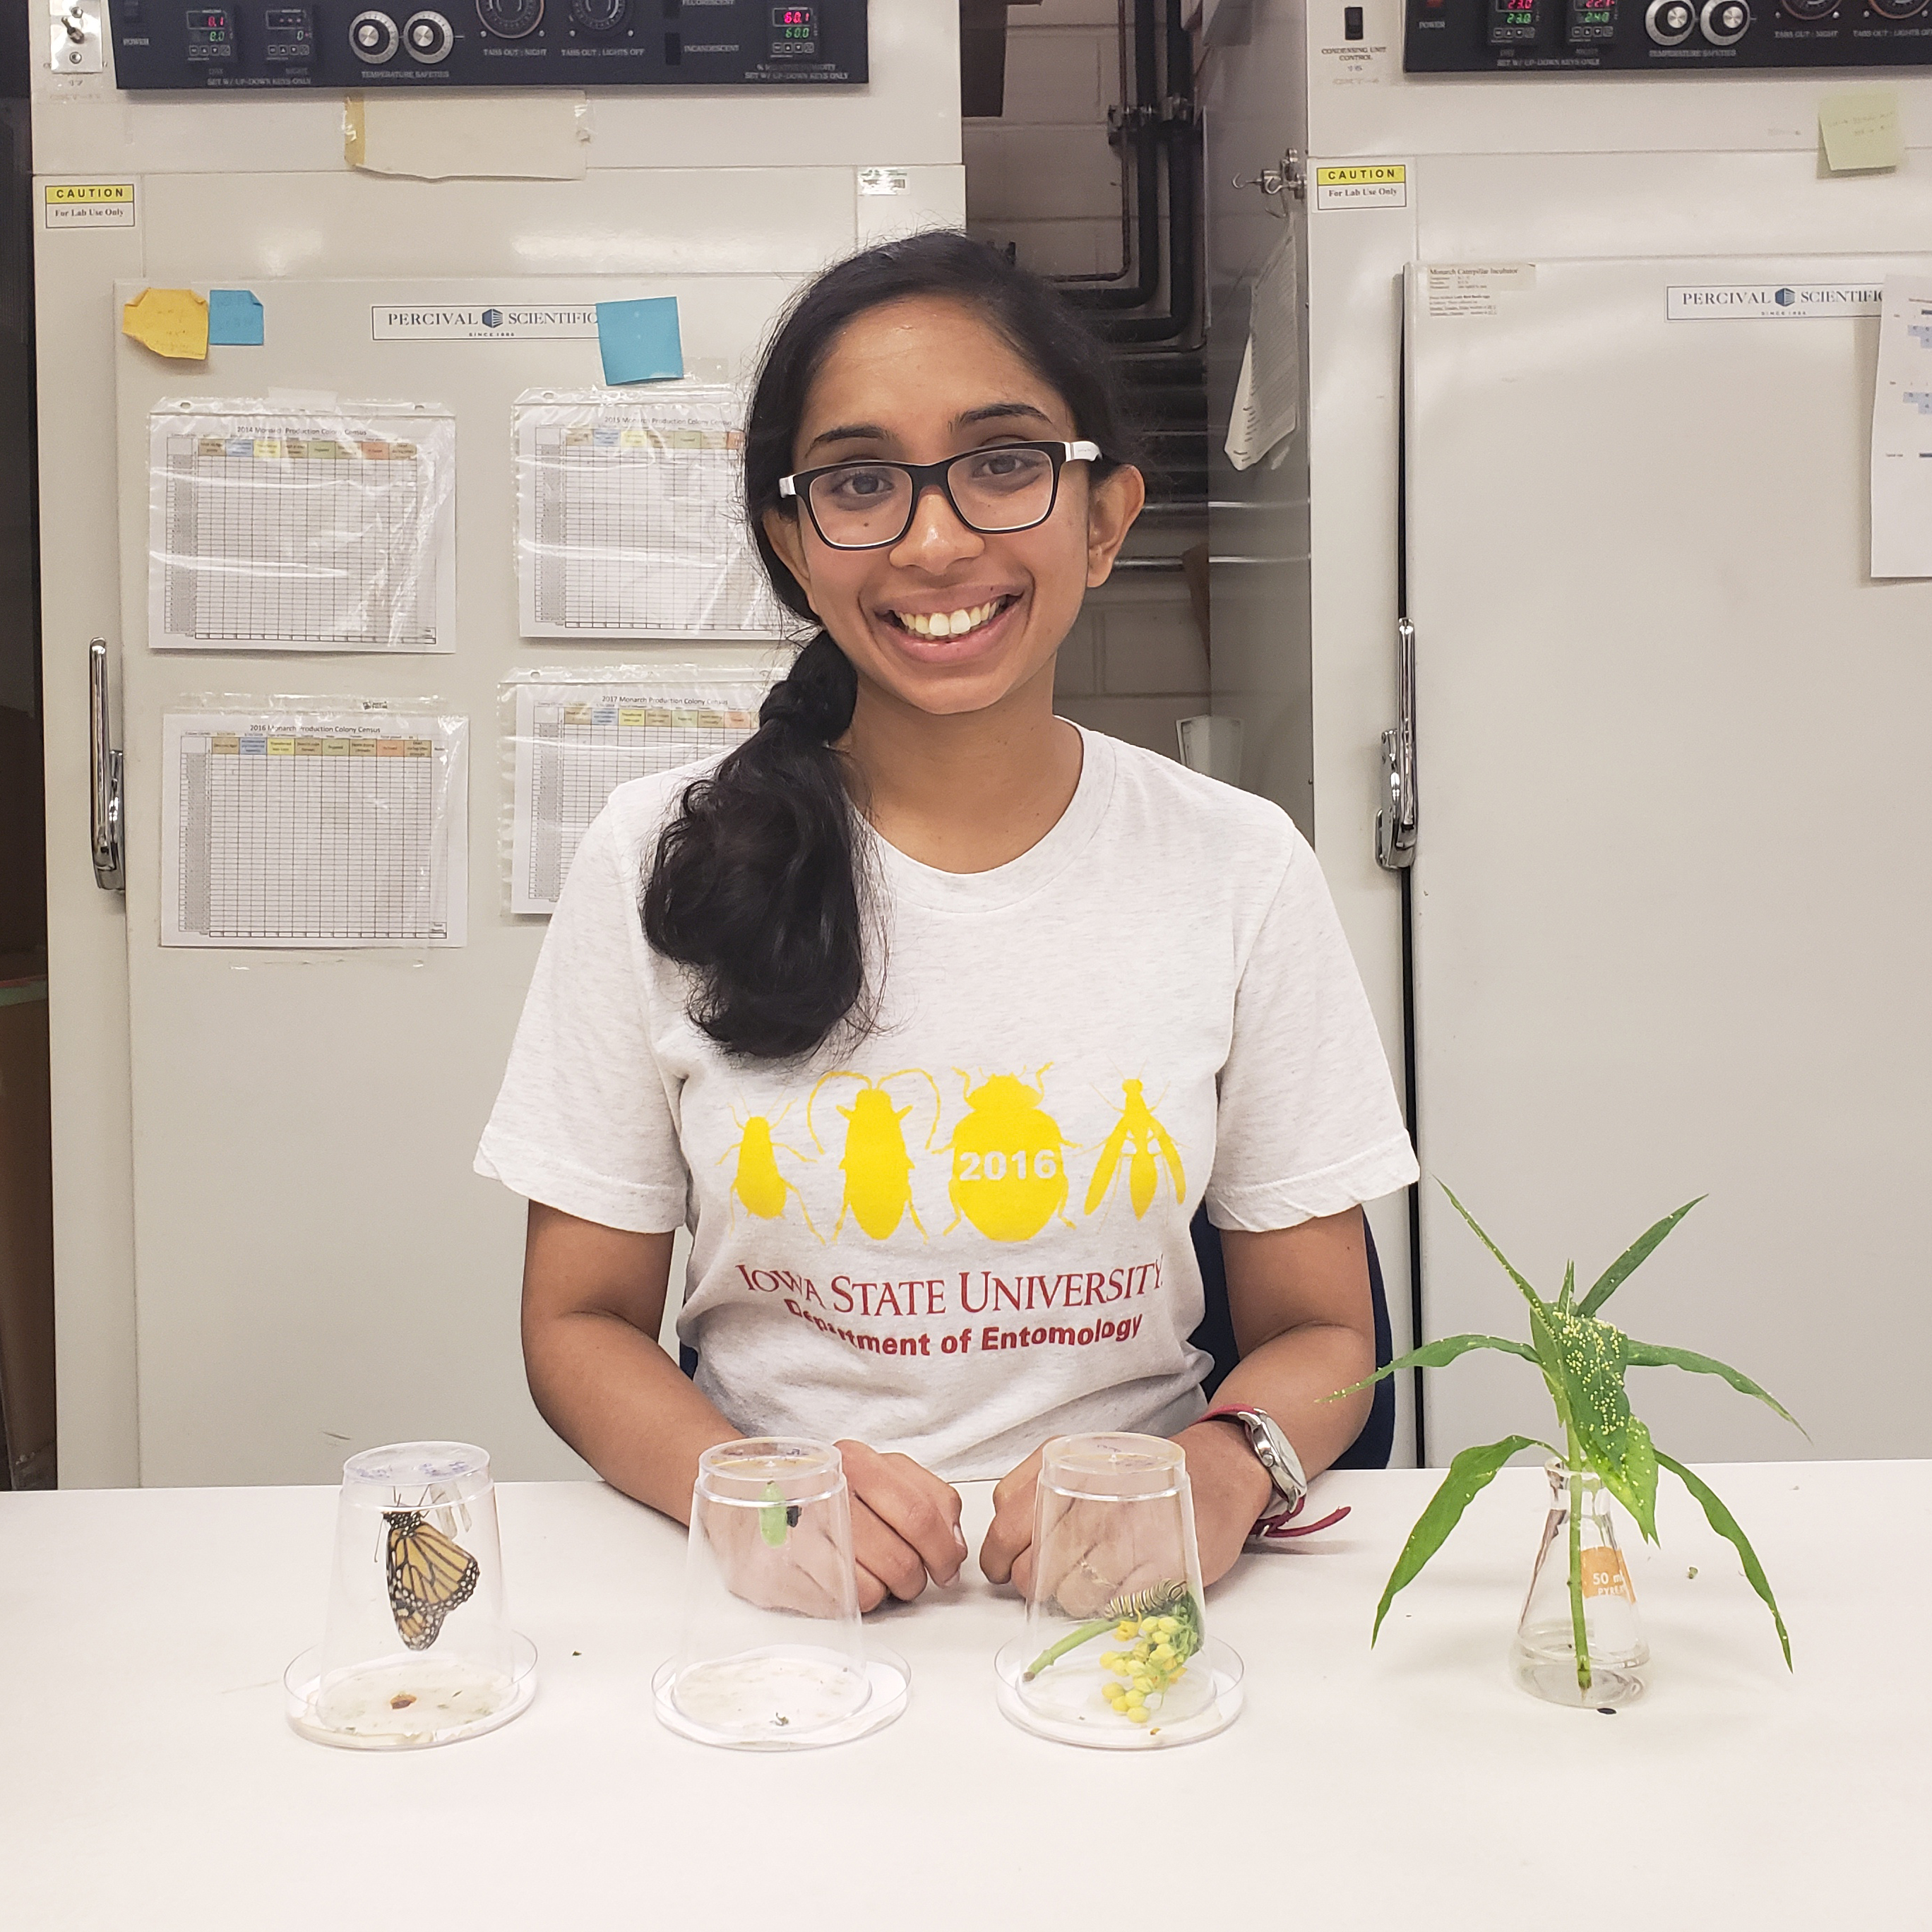 A smiling young woman with an Iowa State University T-shirt sits in a lab, with a sprig of milkweed with monarch eggs in one container on the counter, a monarch chrysalis in another container, a monarch caterpillar in the next, and an adult monarch butterfly in the final container.